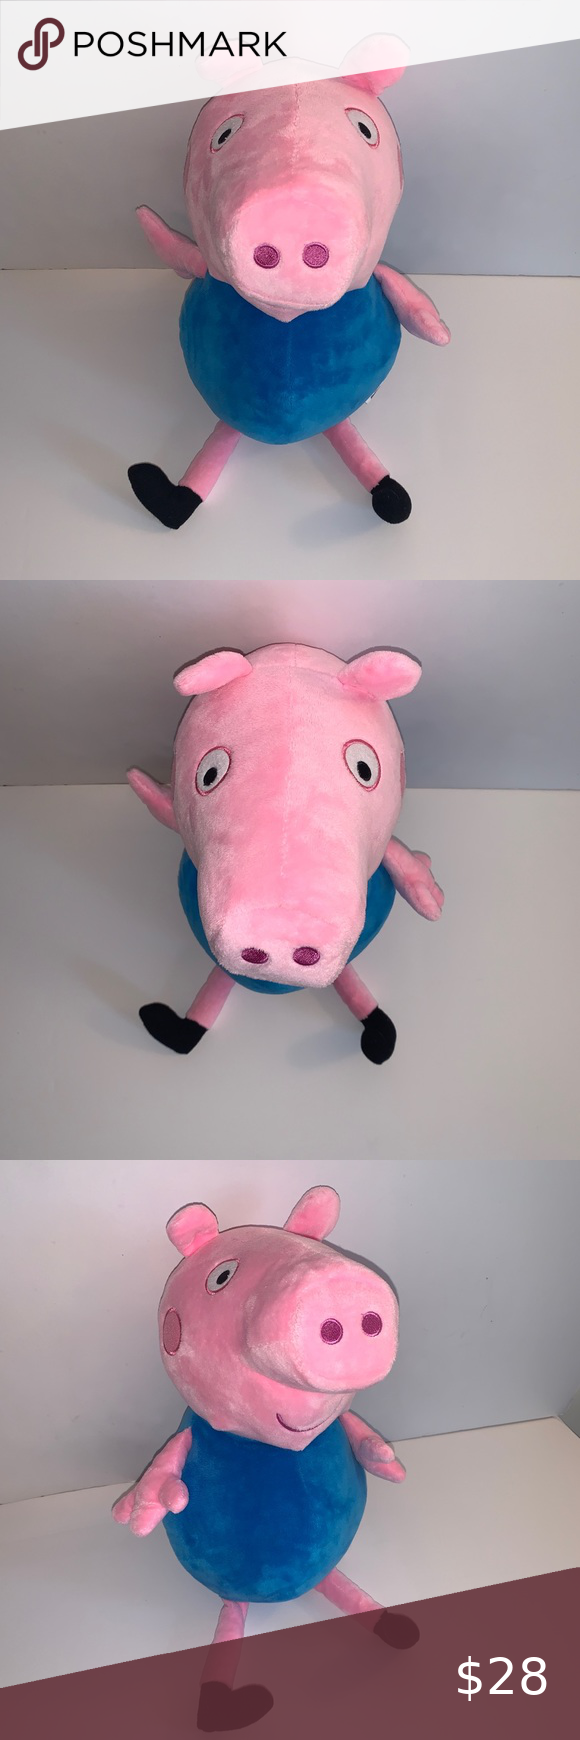 Peppa Pig 17 5 George Plush Stuffed Animal Peppa Pig 17 5 George Plush Doll Excellent Used Condition Plush Stuffed Animals Dinosaur Stuffed Animal Peppa Pig [ 1740 x 580 Pixel ]